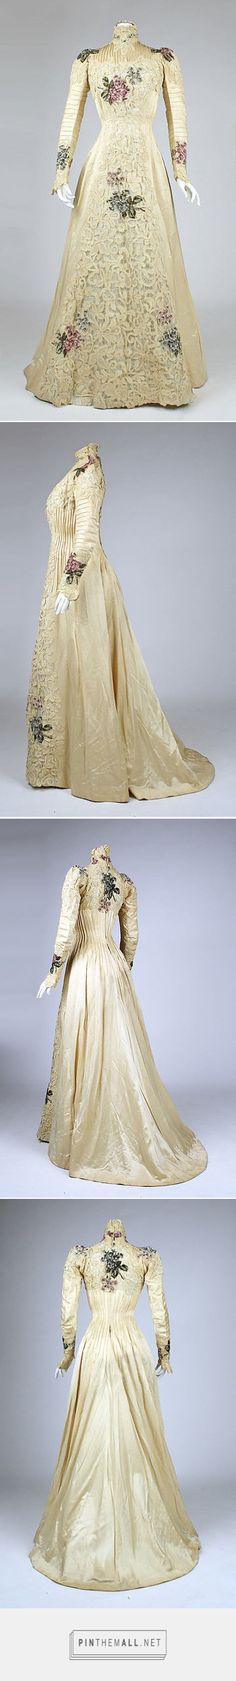 Dress ca. 1900 American | The Metropolitan Museum of Art